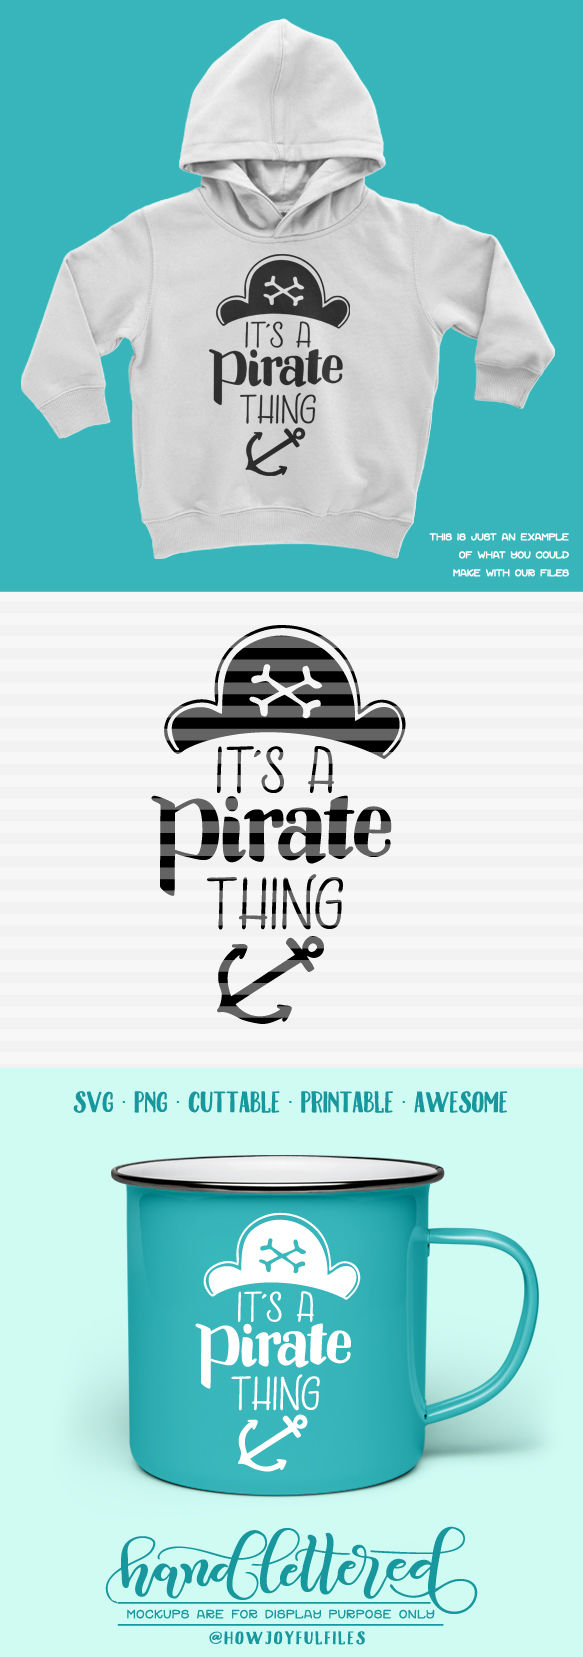 It S A Pirate Thing Ahoy Matey Hand Drawn Lettered Cut File By Howjoyful Files Thehungryjpeg Com